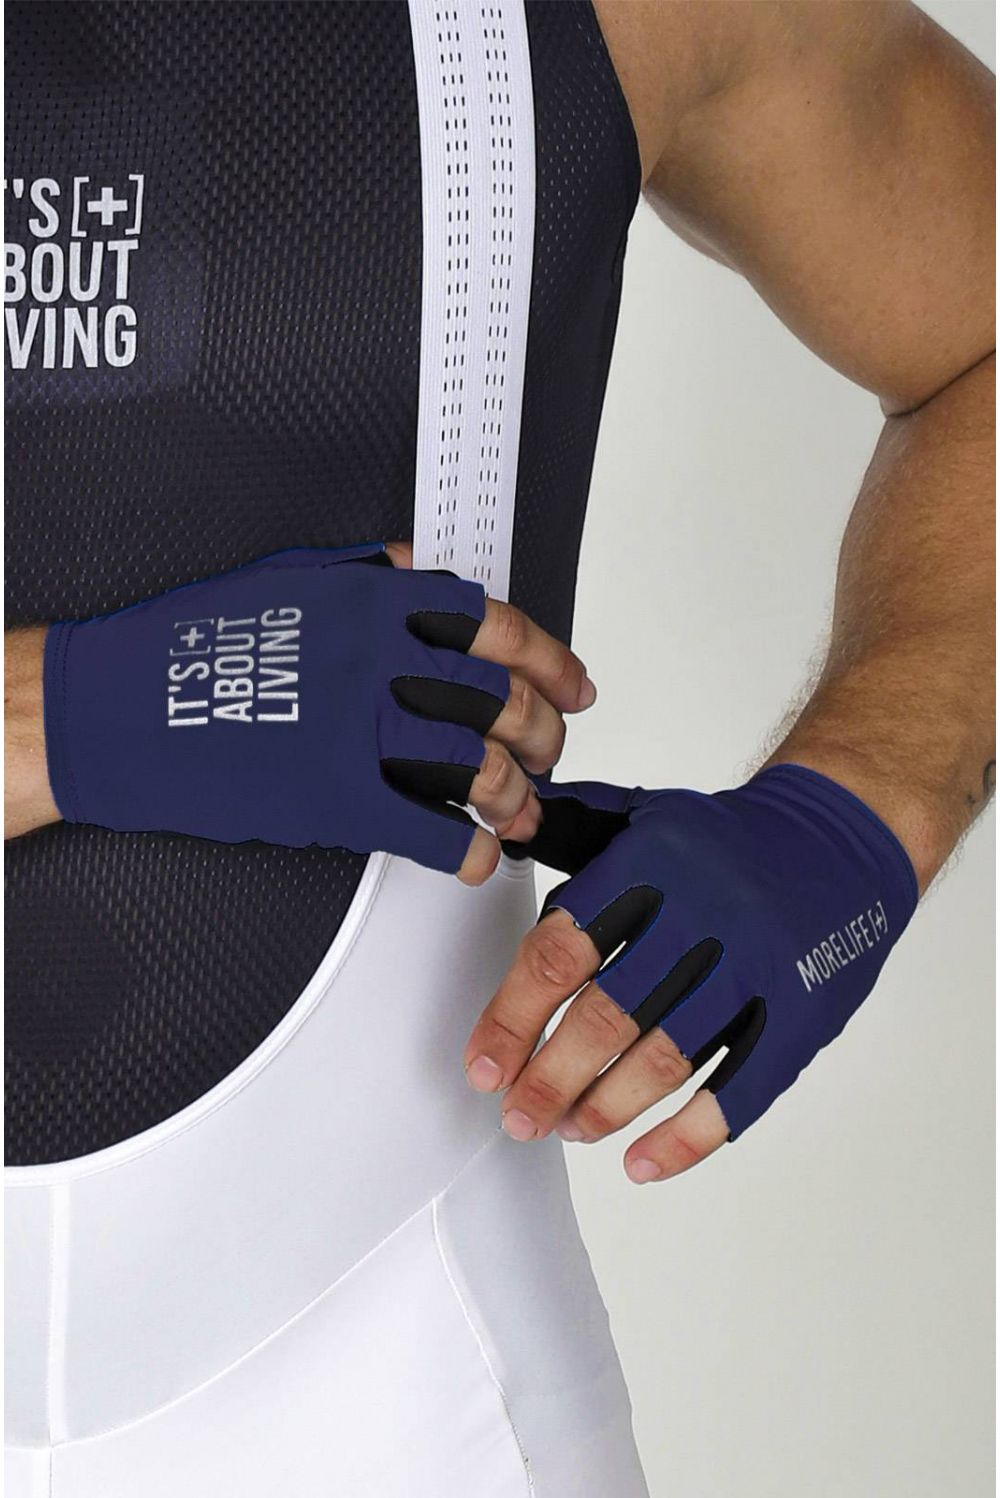 NAVY BLUE GLOVES